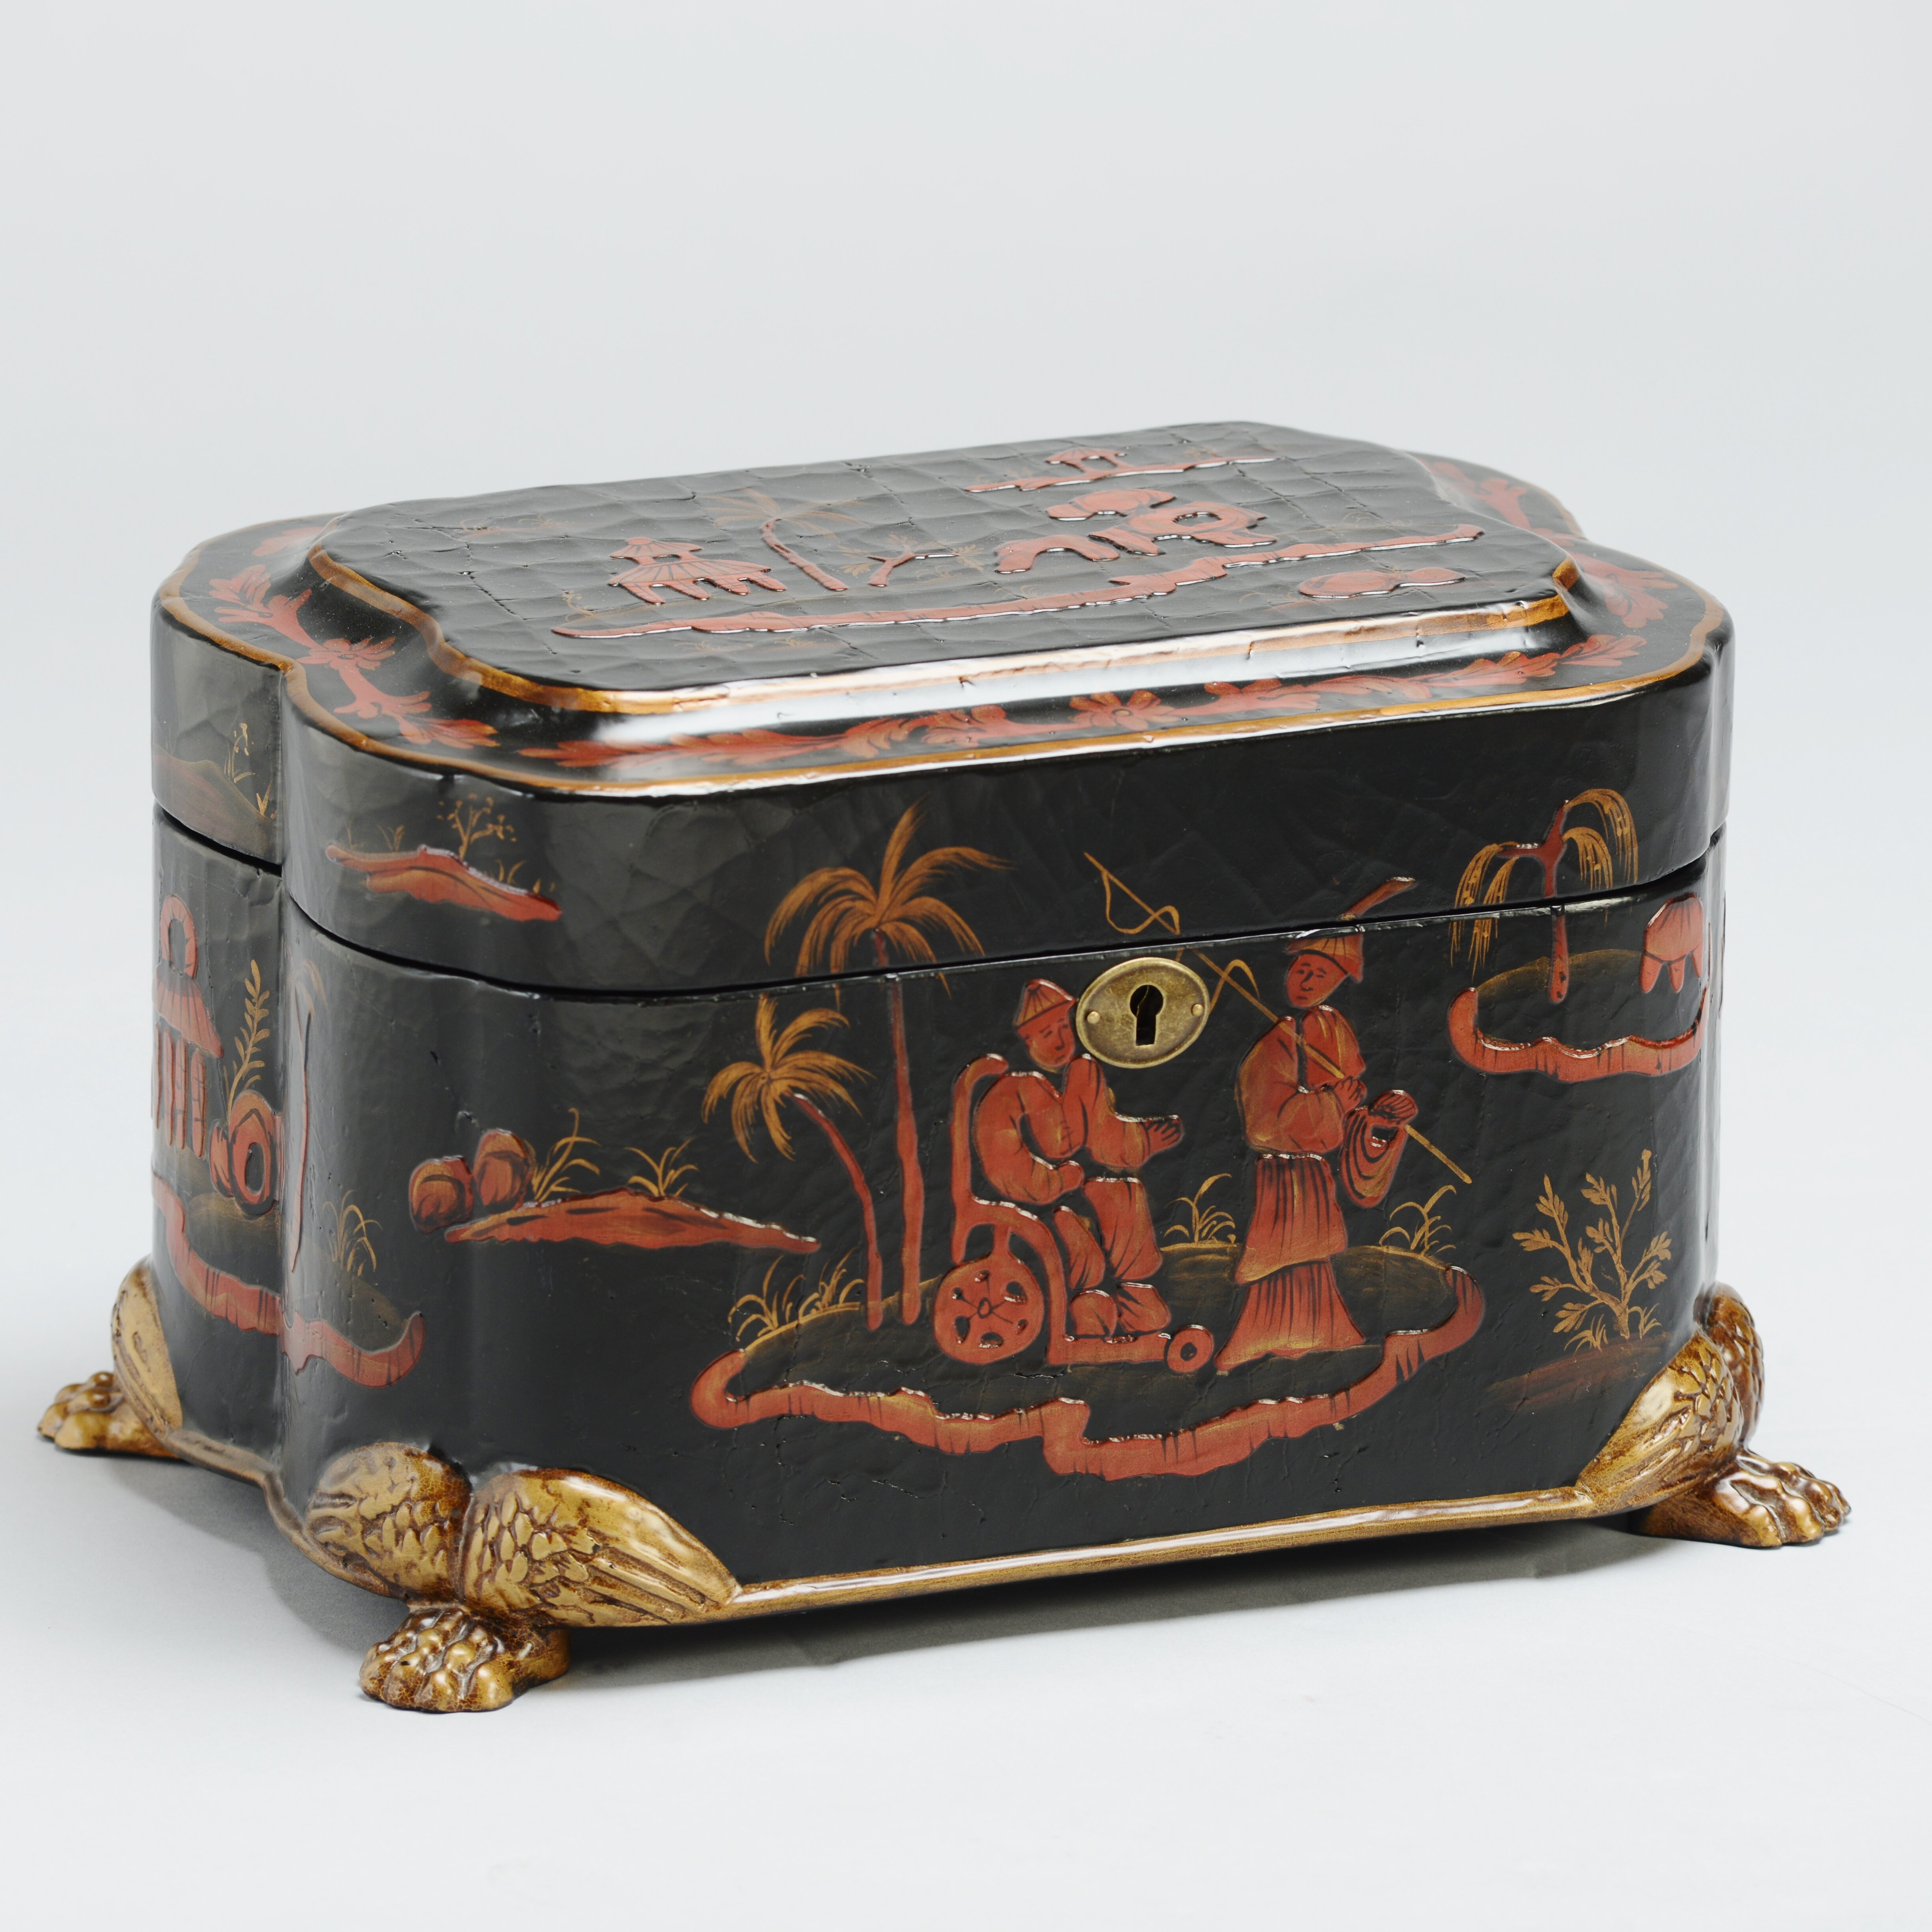 The Life Chest Heritage Dynasty Memory Life Chest Wayfair